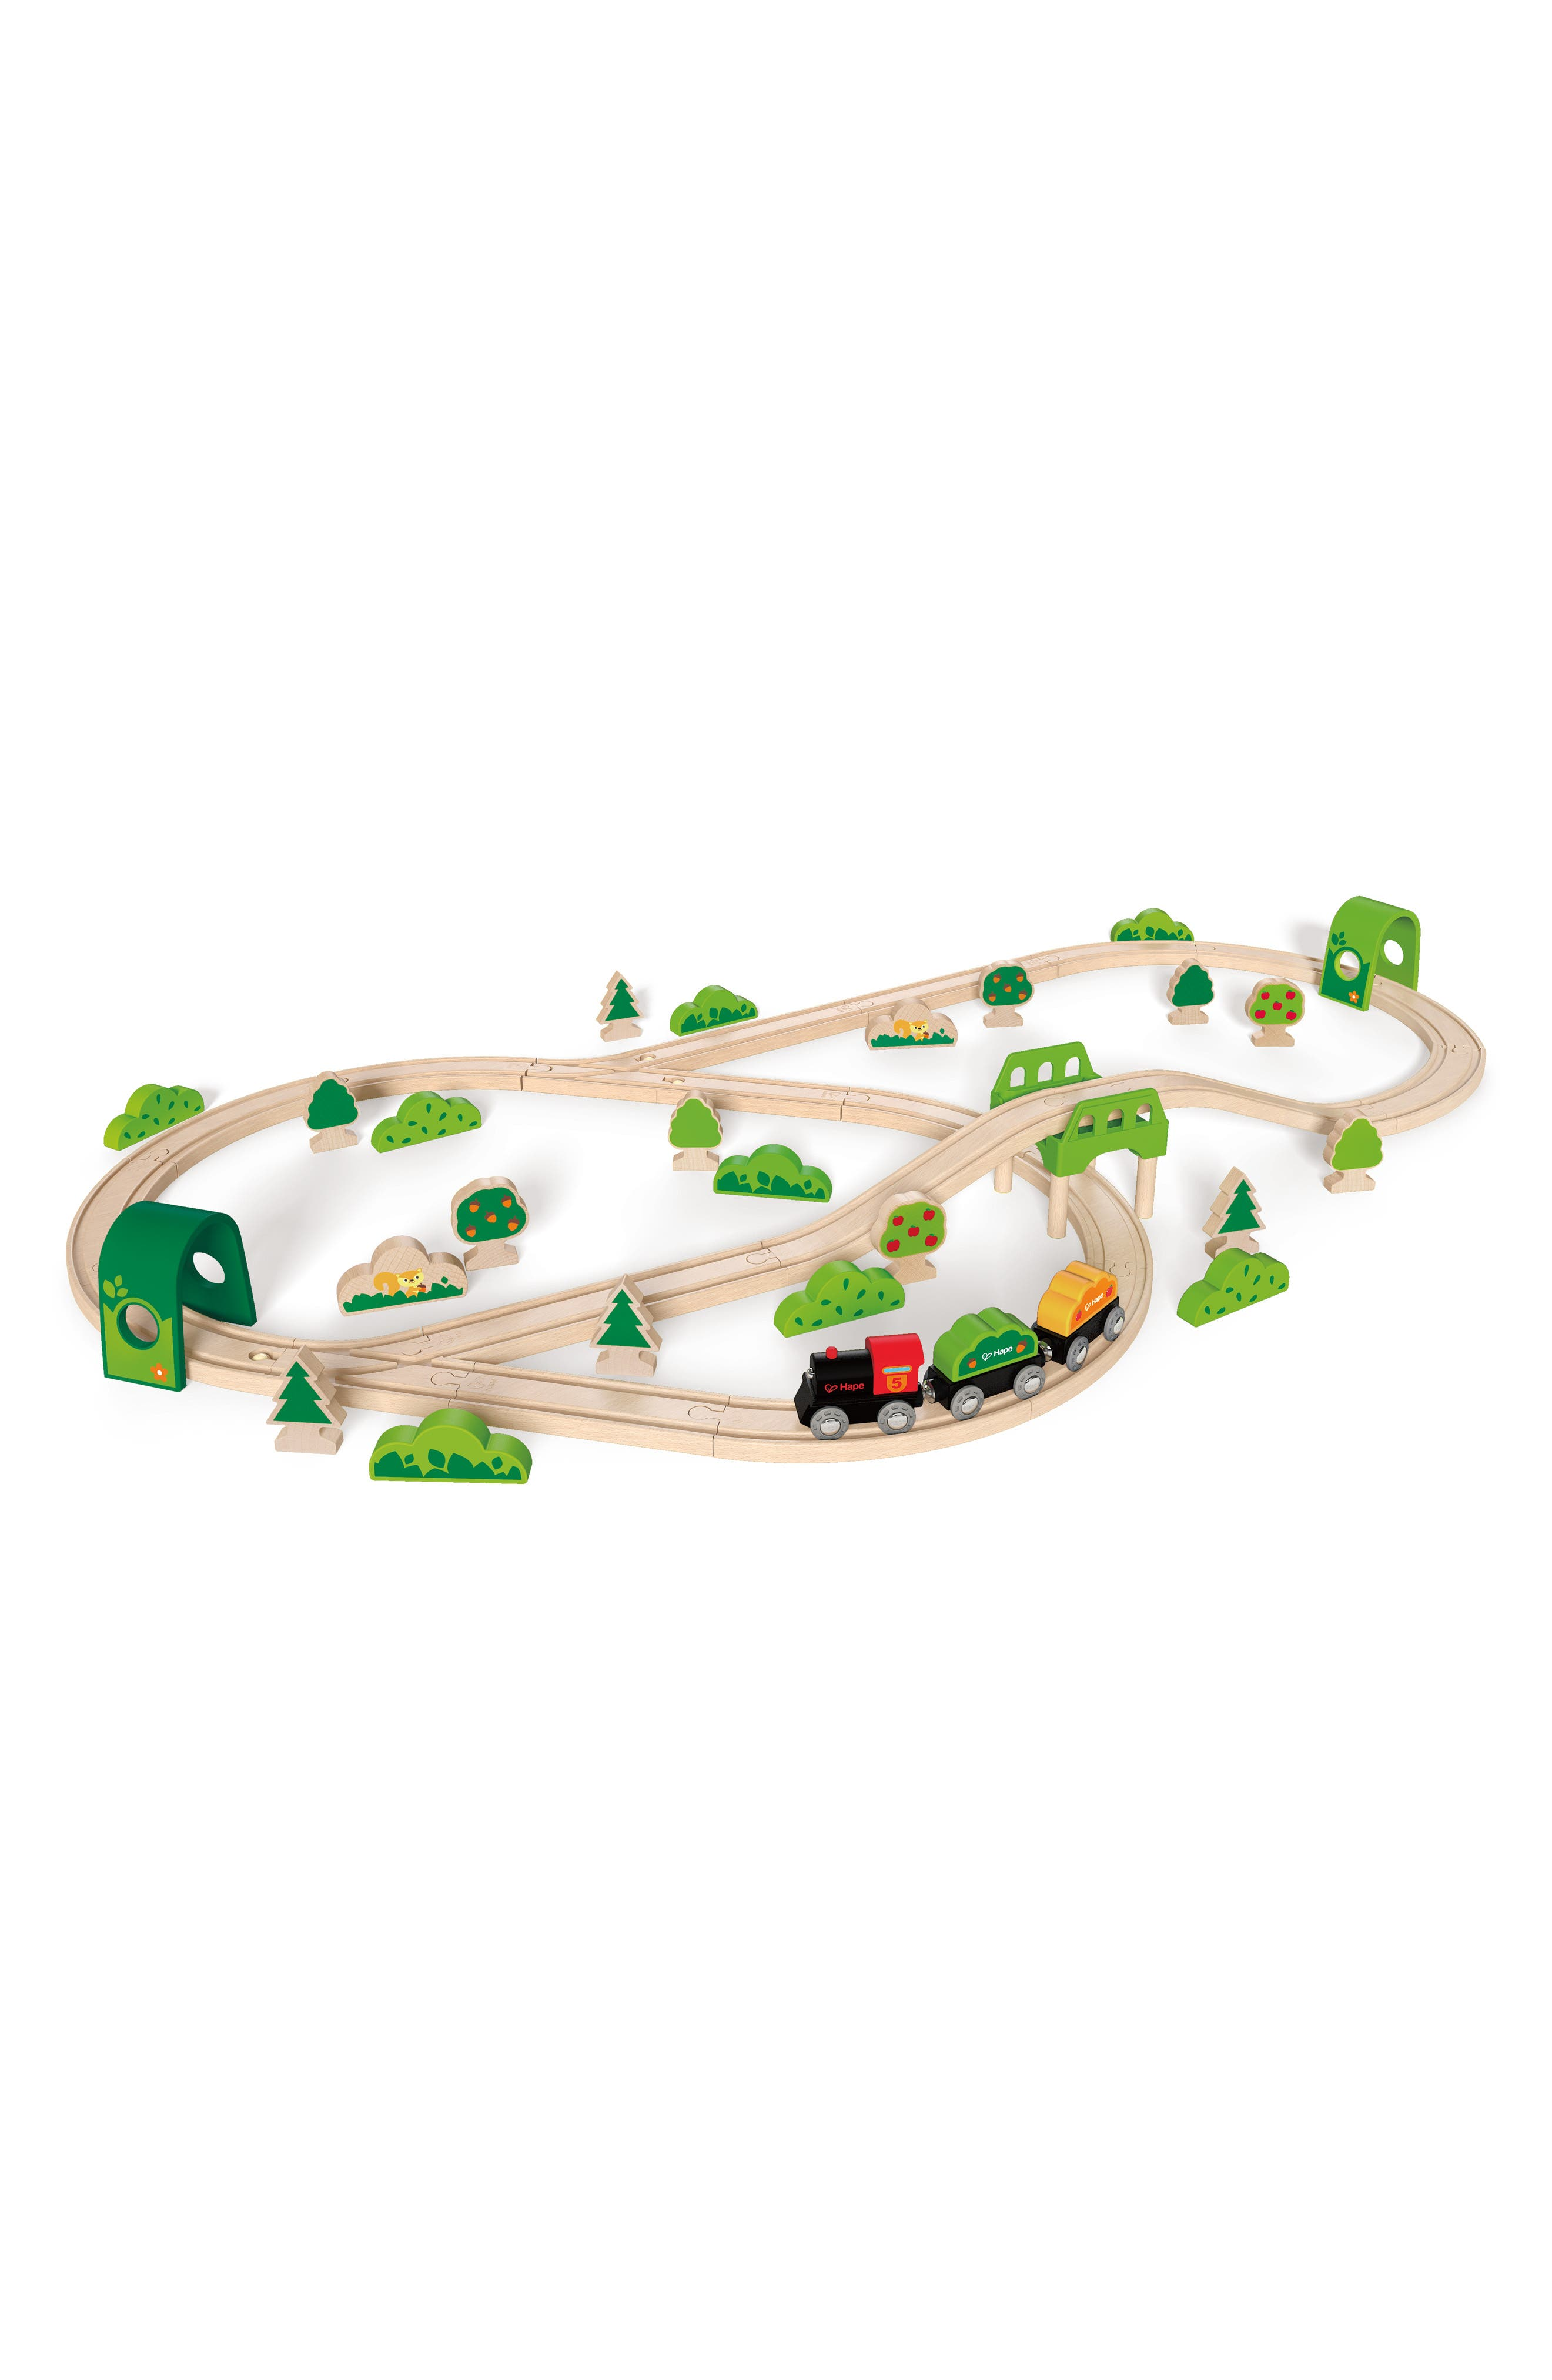 Main Image - Hape Forest Railway Wooden Train Set